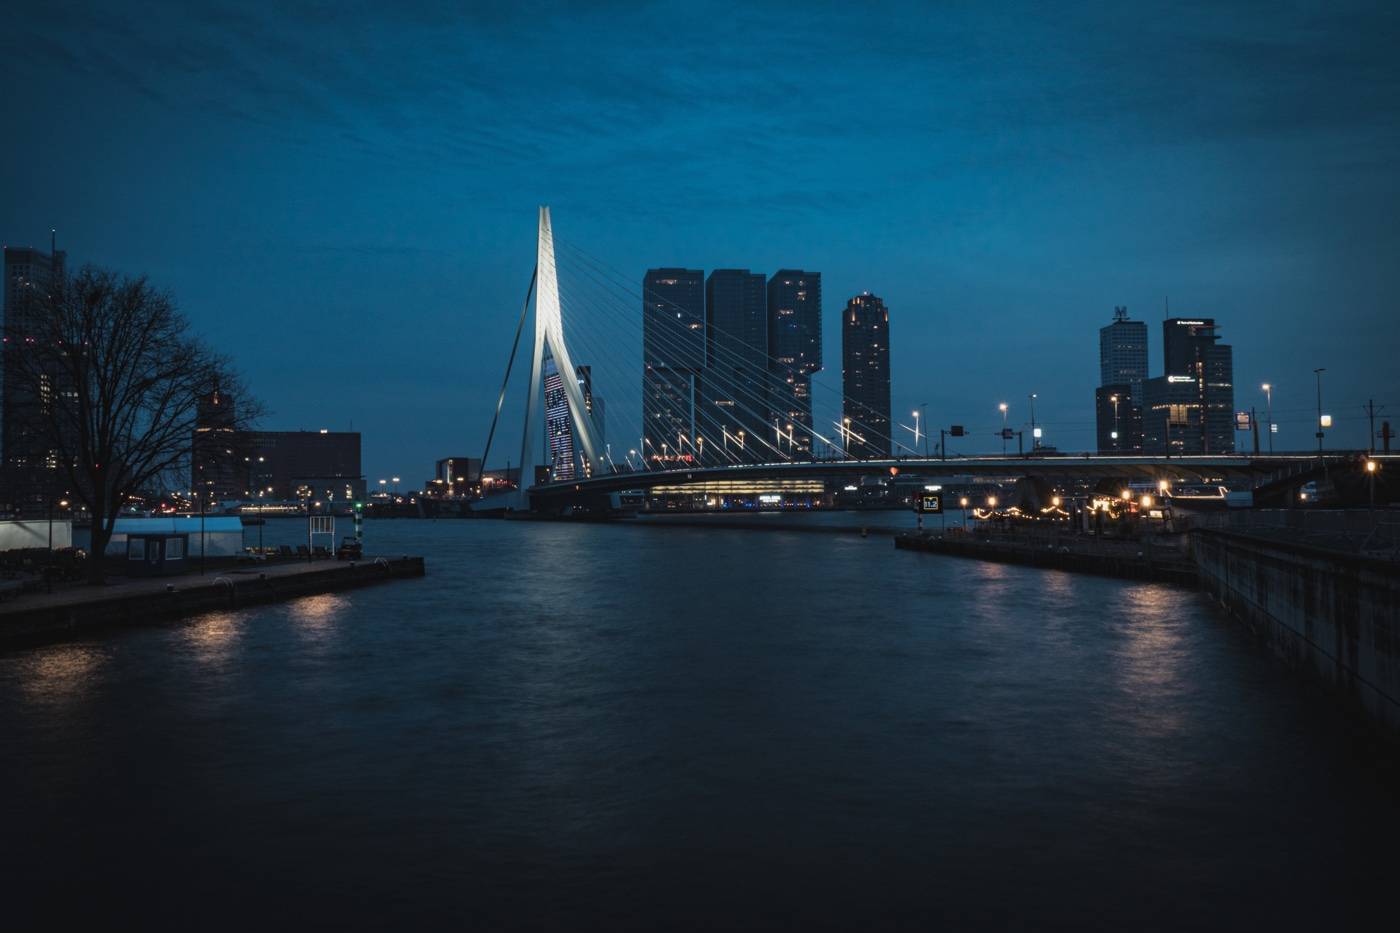 Rotterdam at night by Joël de Vriend